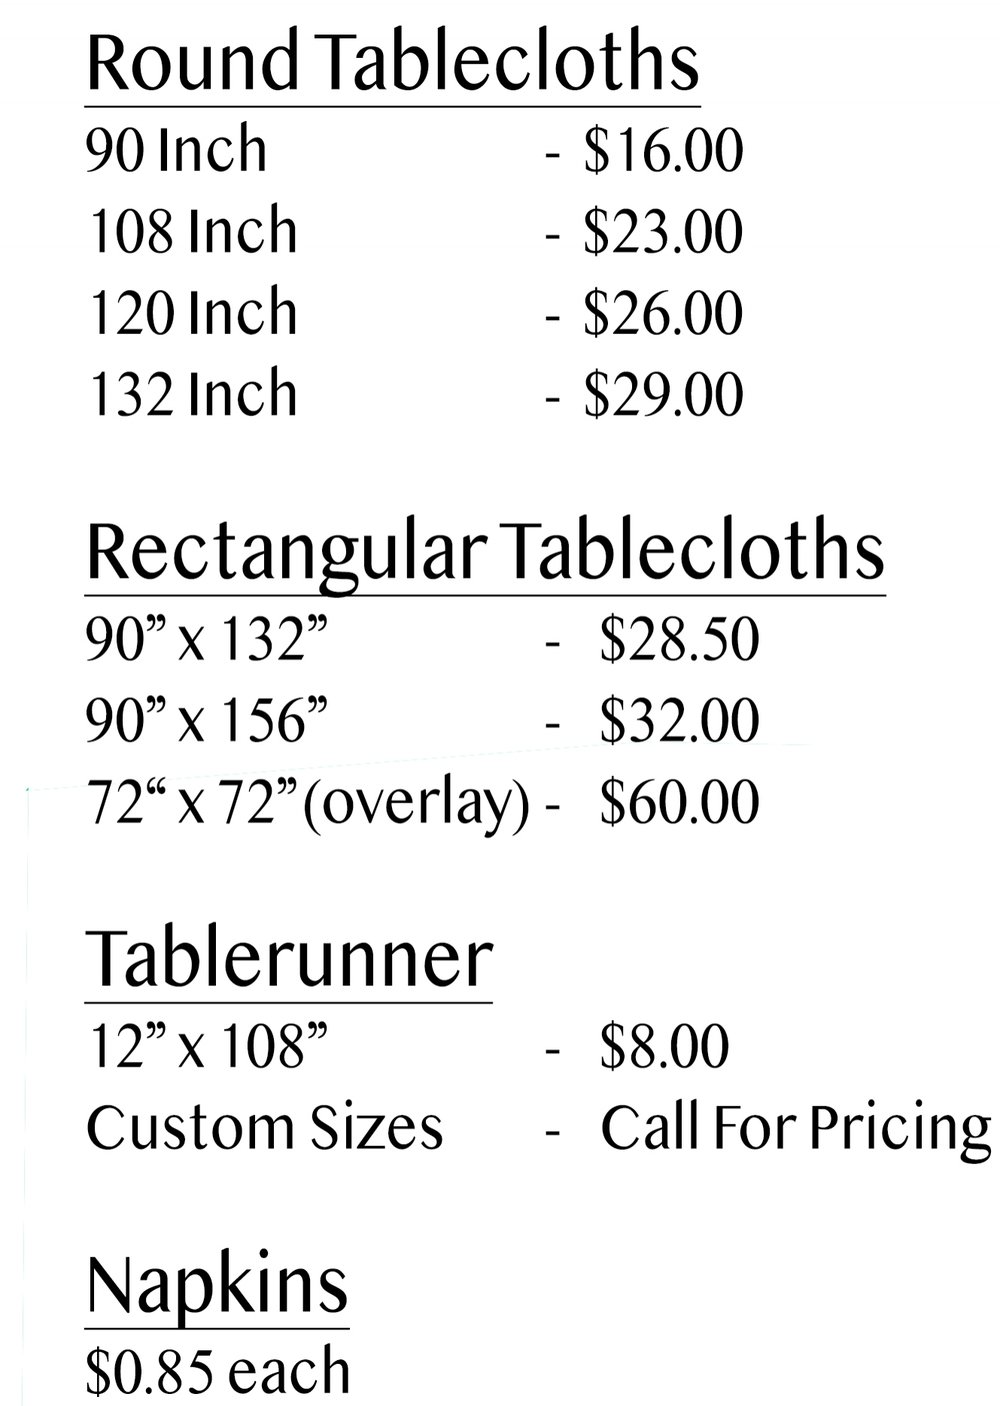 "*132"" and 156"" Tablecloths have rounded corners*"